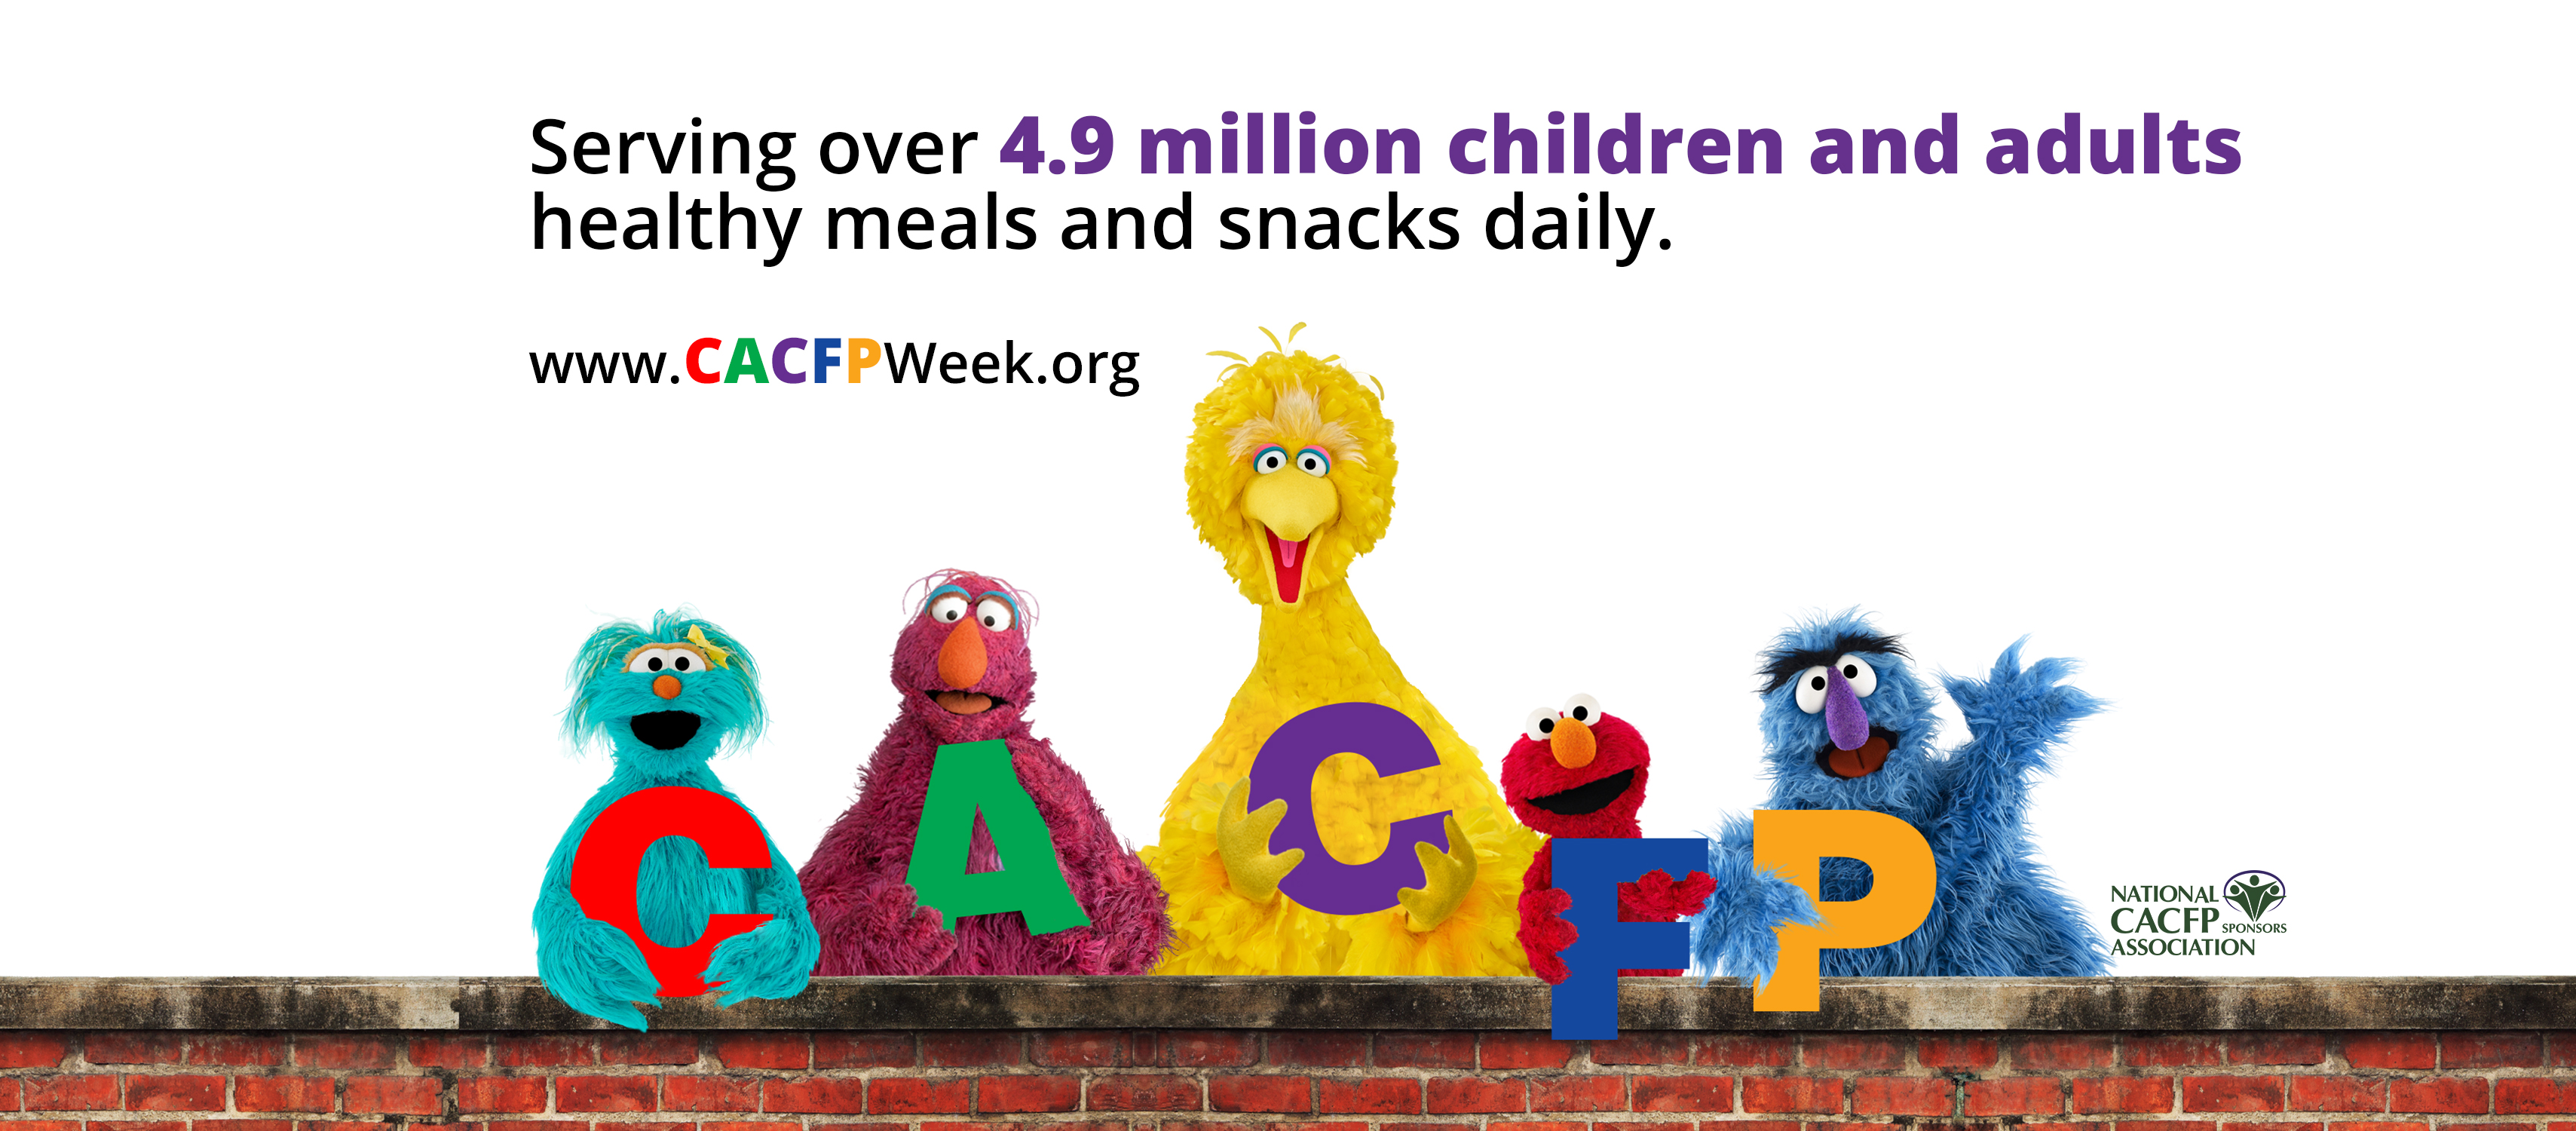 March 14-20: Celebrating the Child and Adult Care Food Program